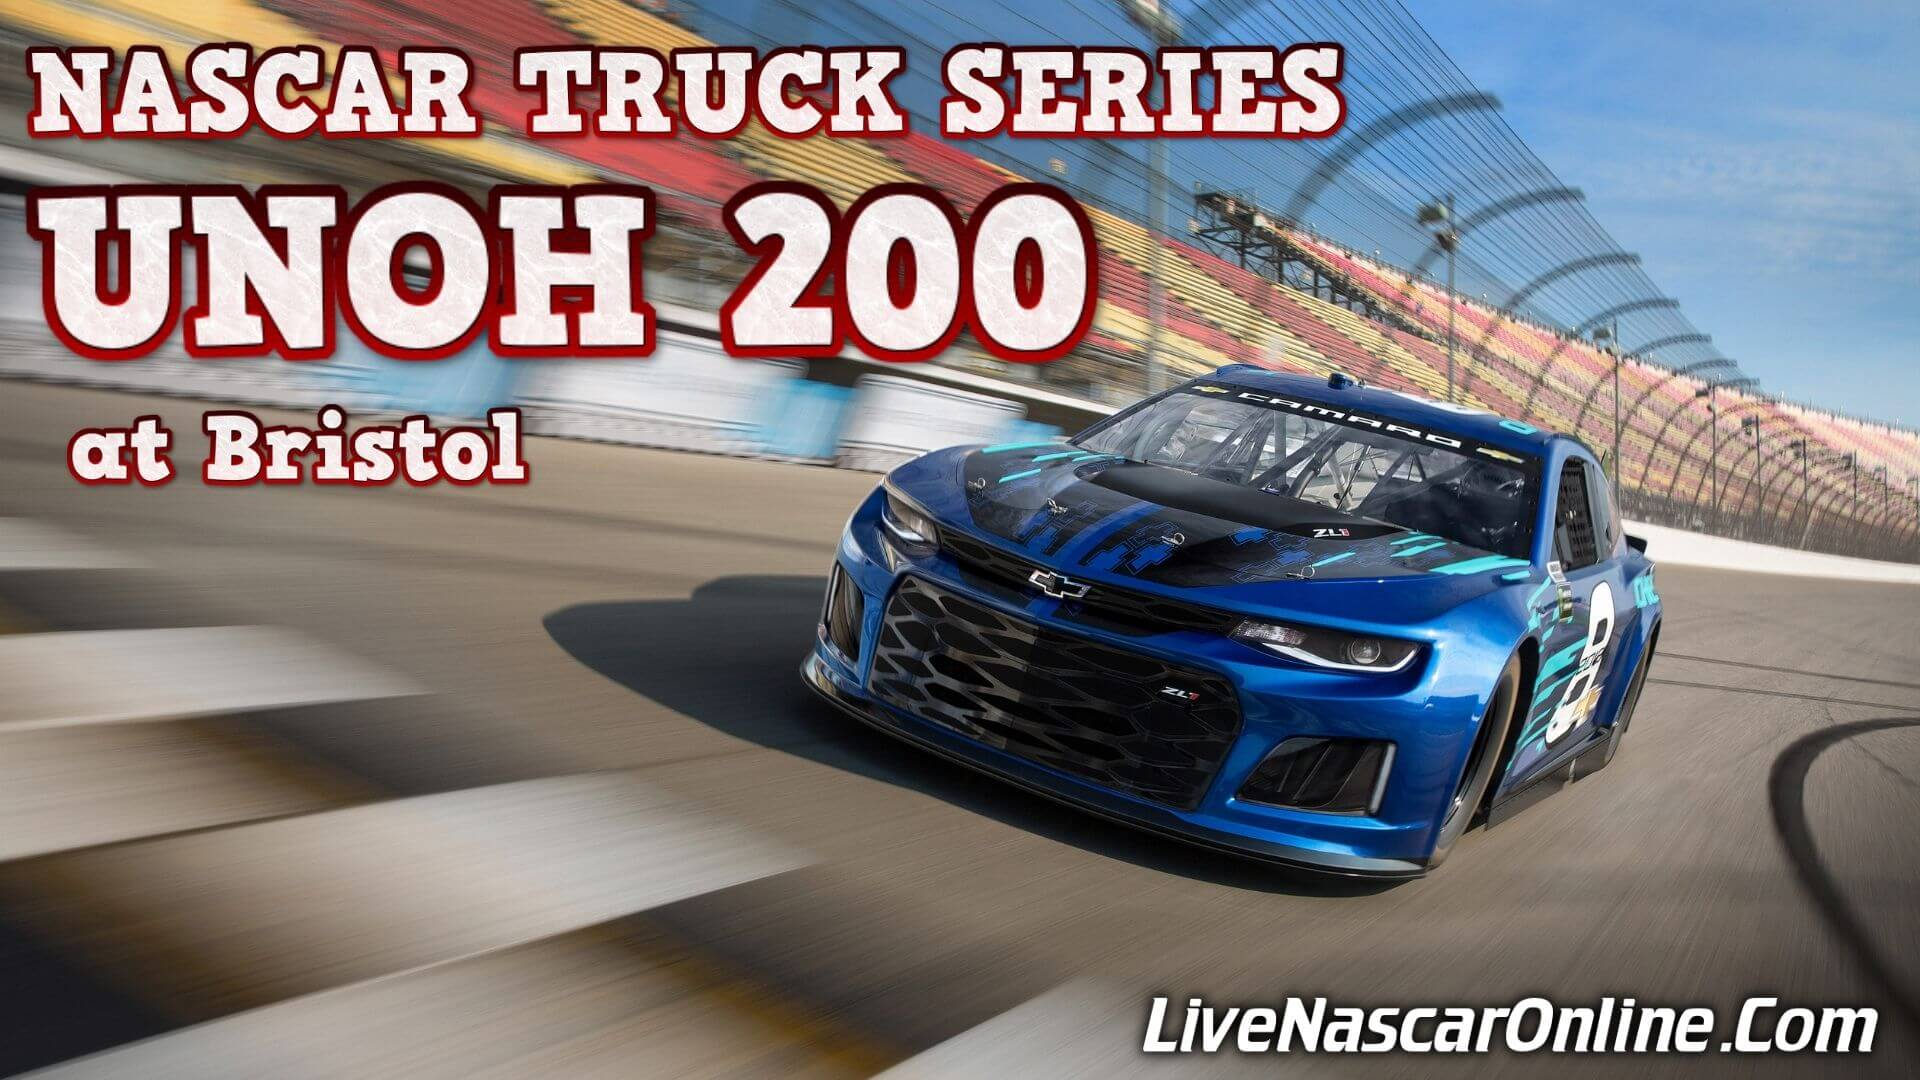 UNOH 200 Highlights 2020 Nascar Truck Series